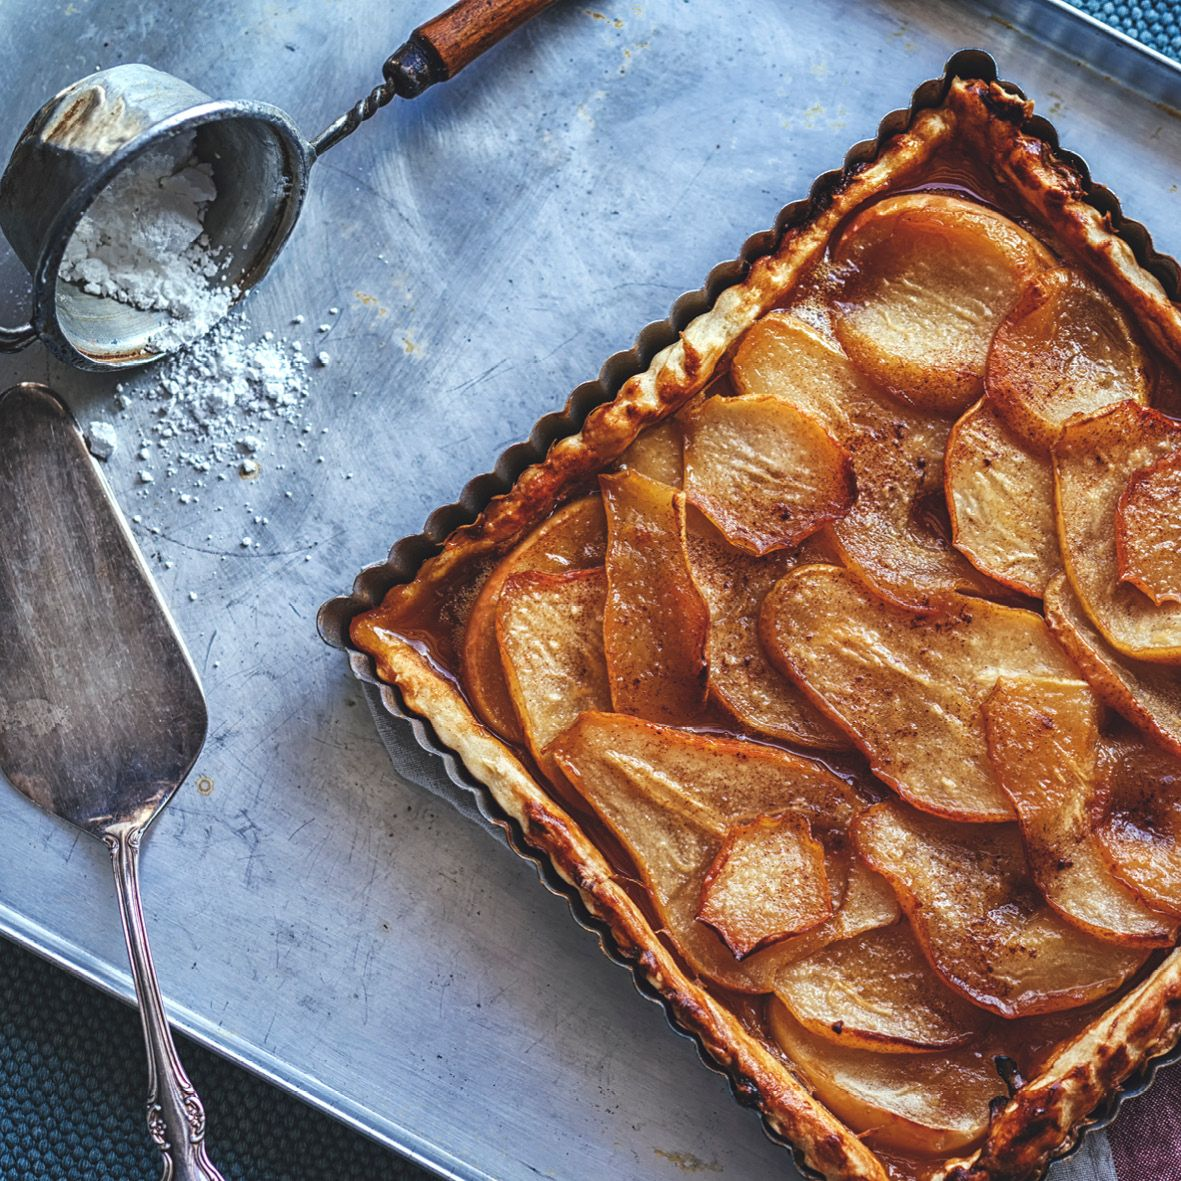 Brown_butter_and_cardamom_pear_tart.jpg